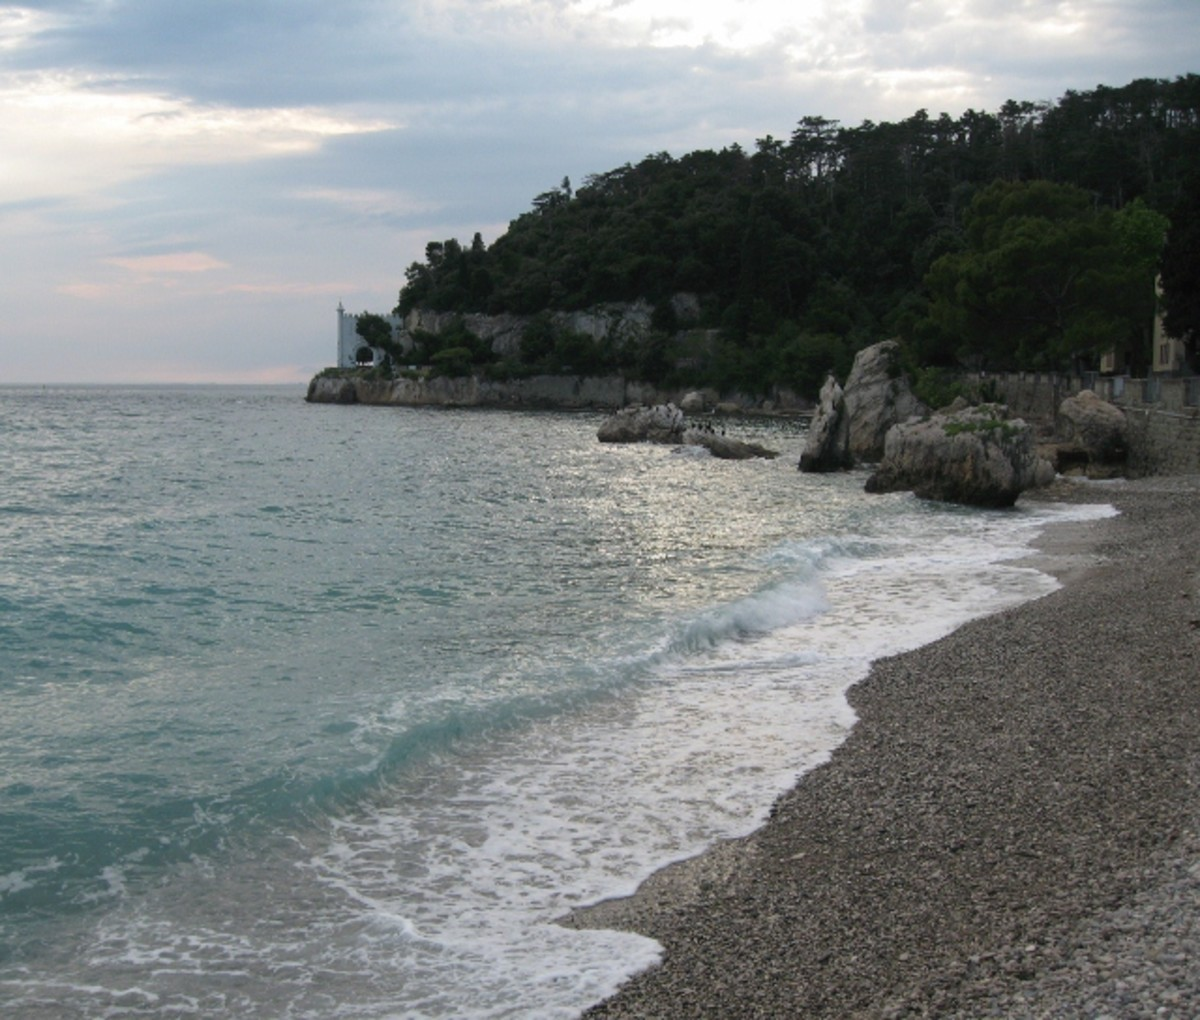 Sea view in Trieste, Italy